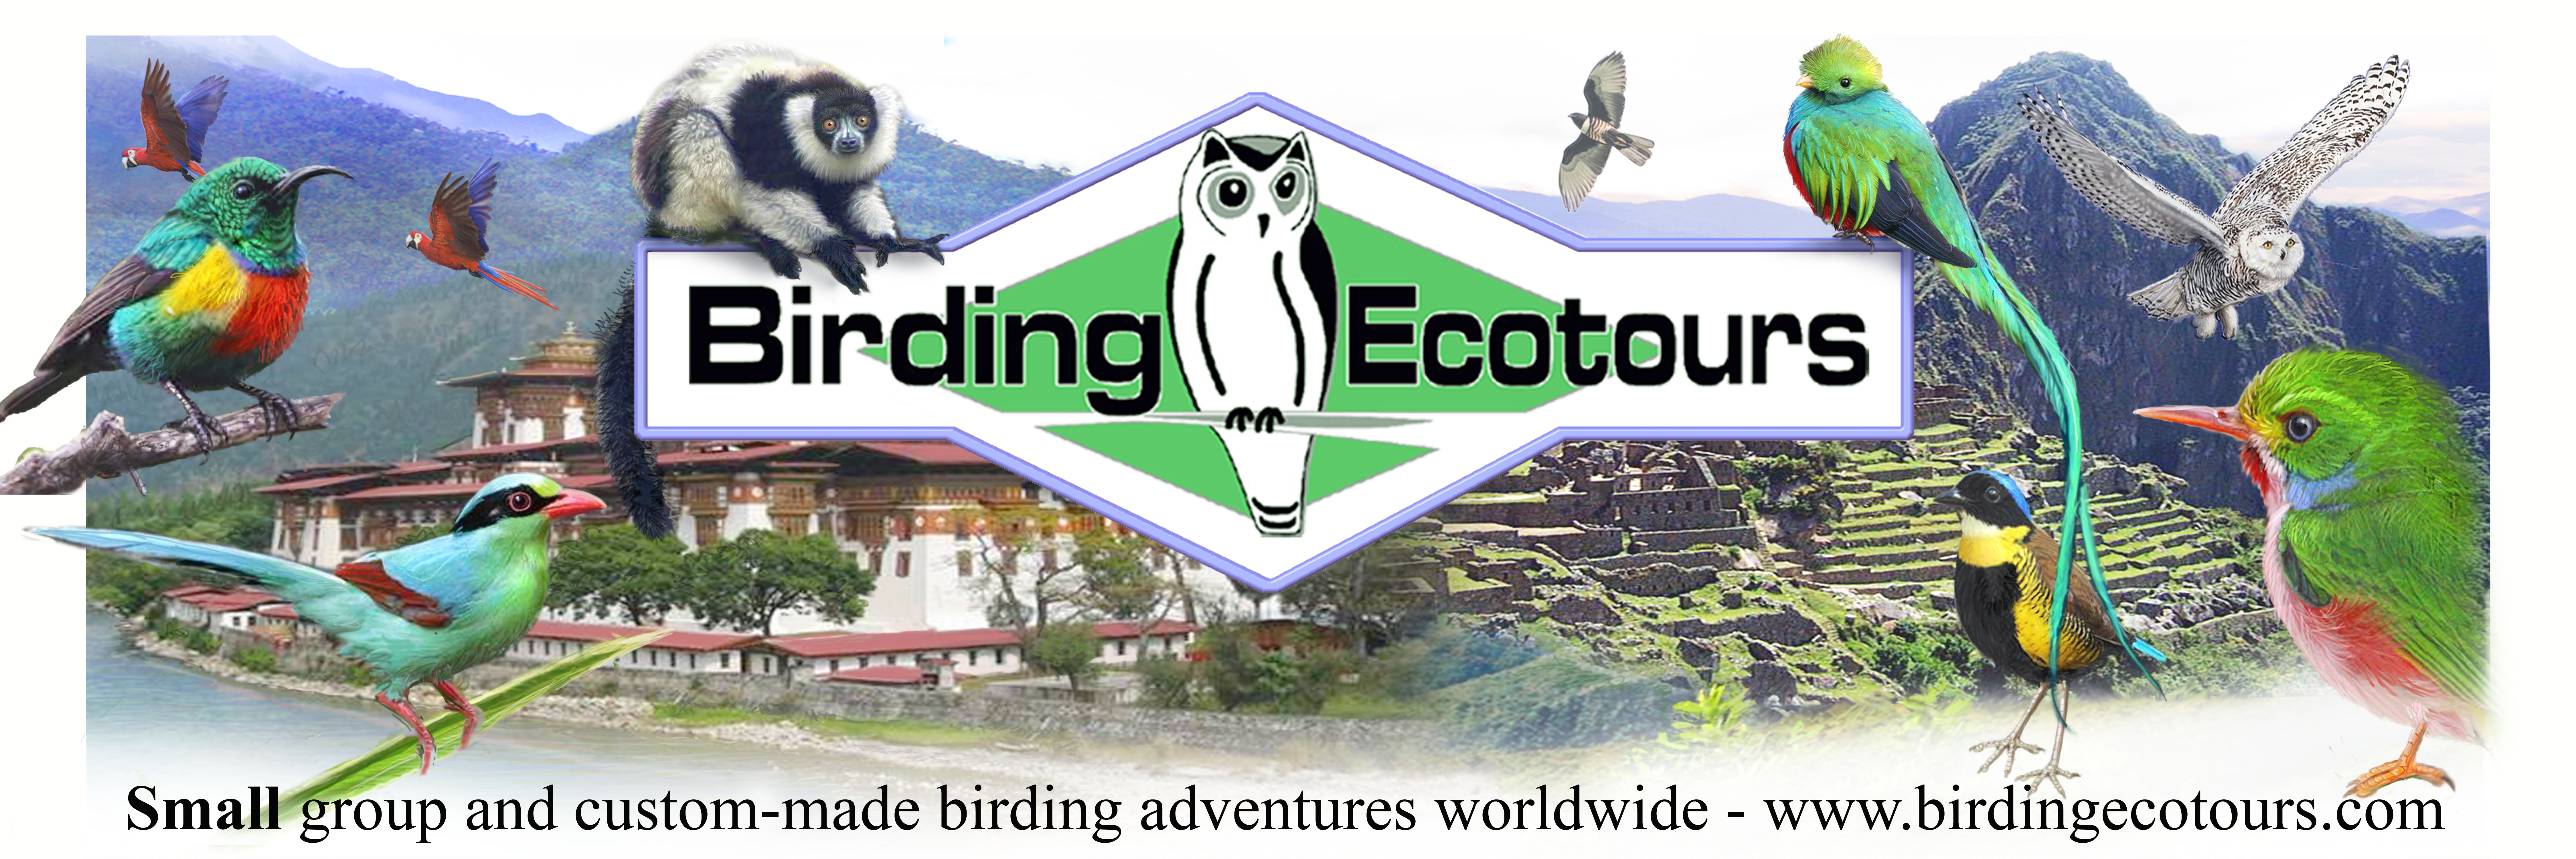 Birding Ecotours-small group and custom-made birding adventures worldwide